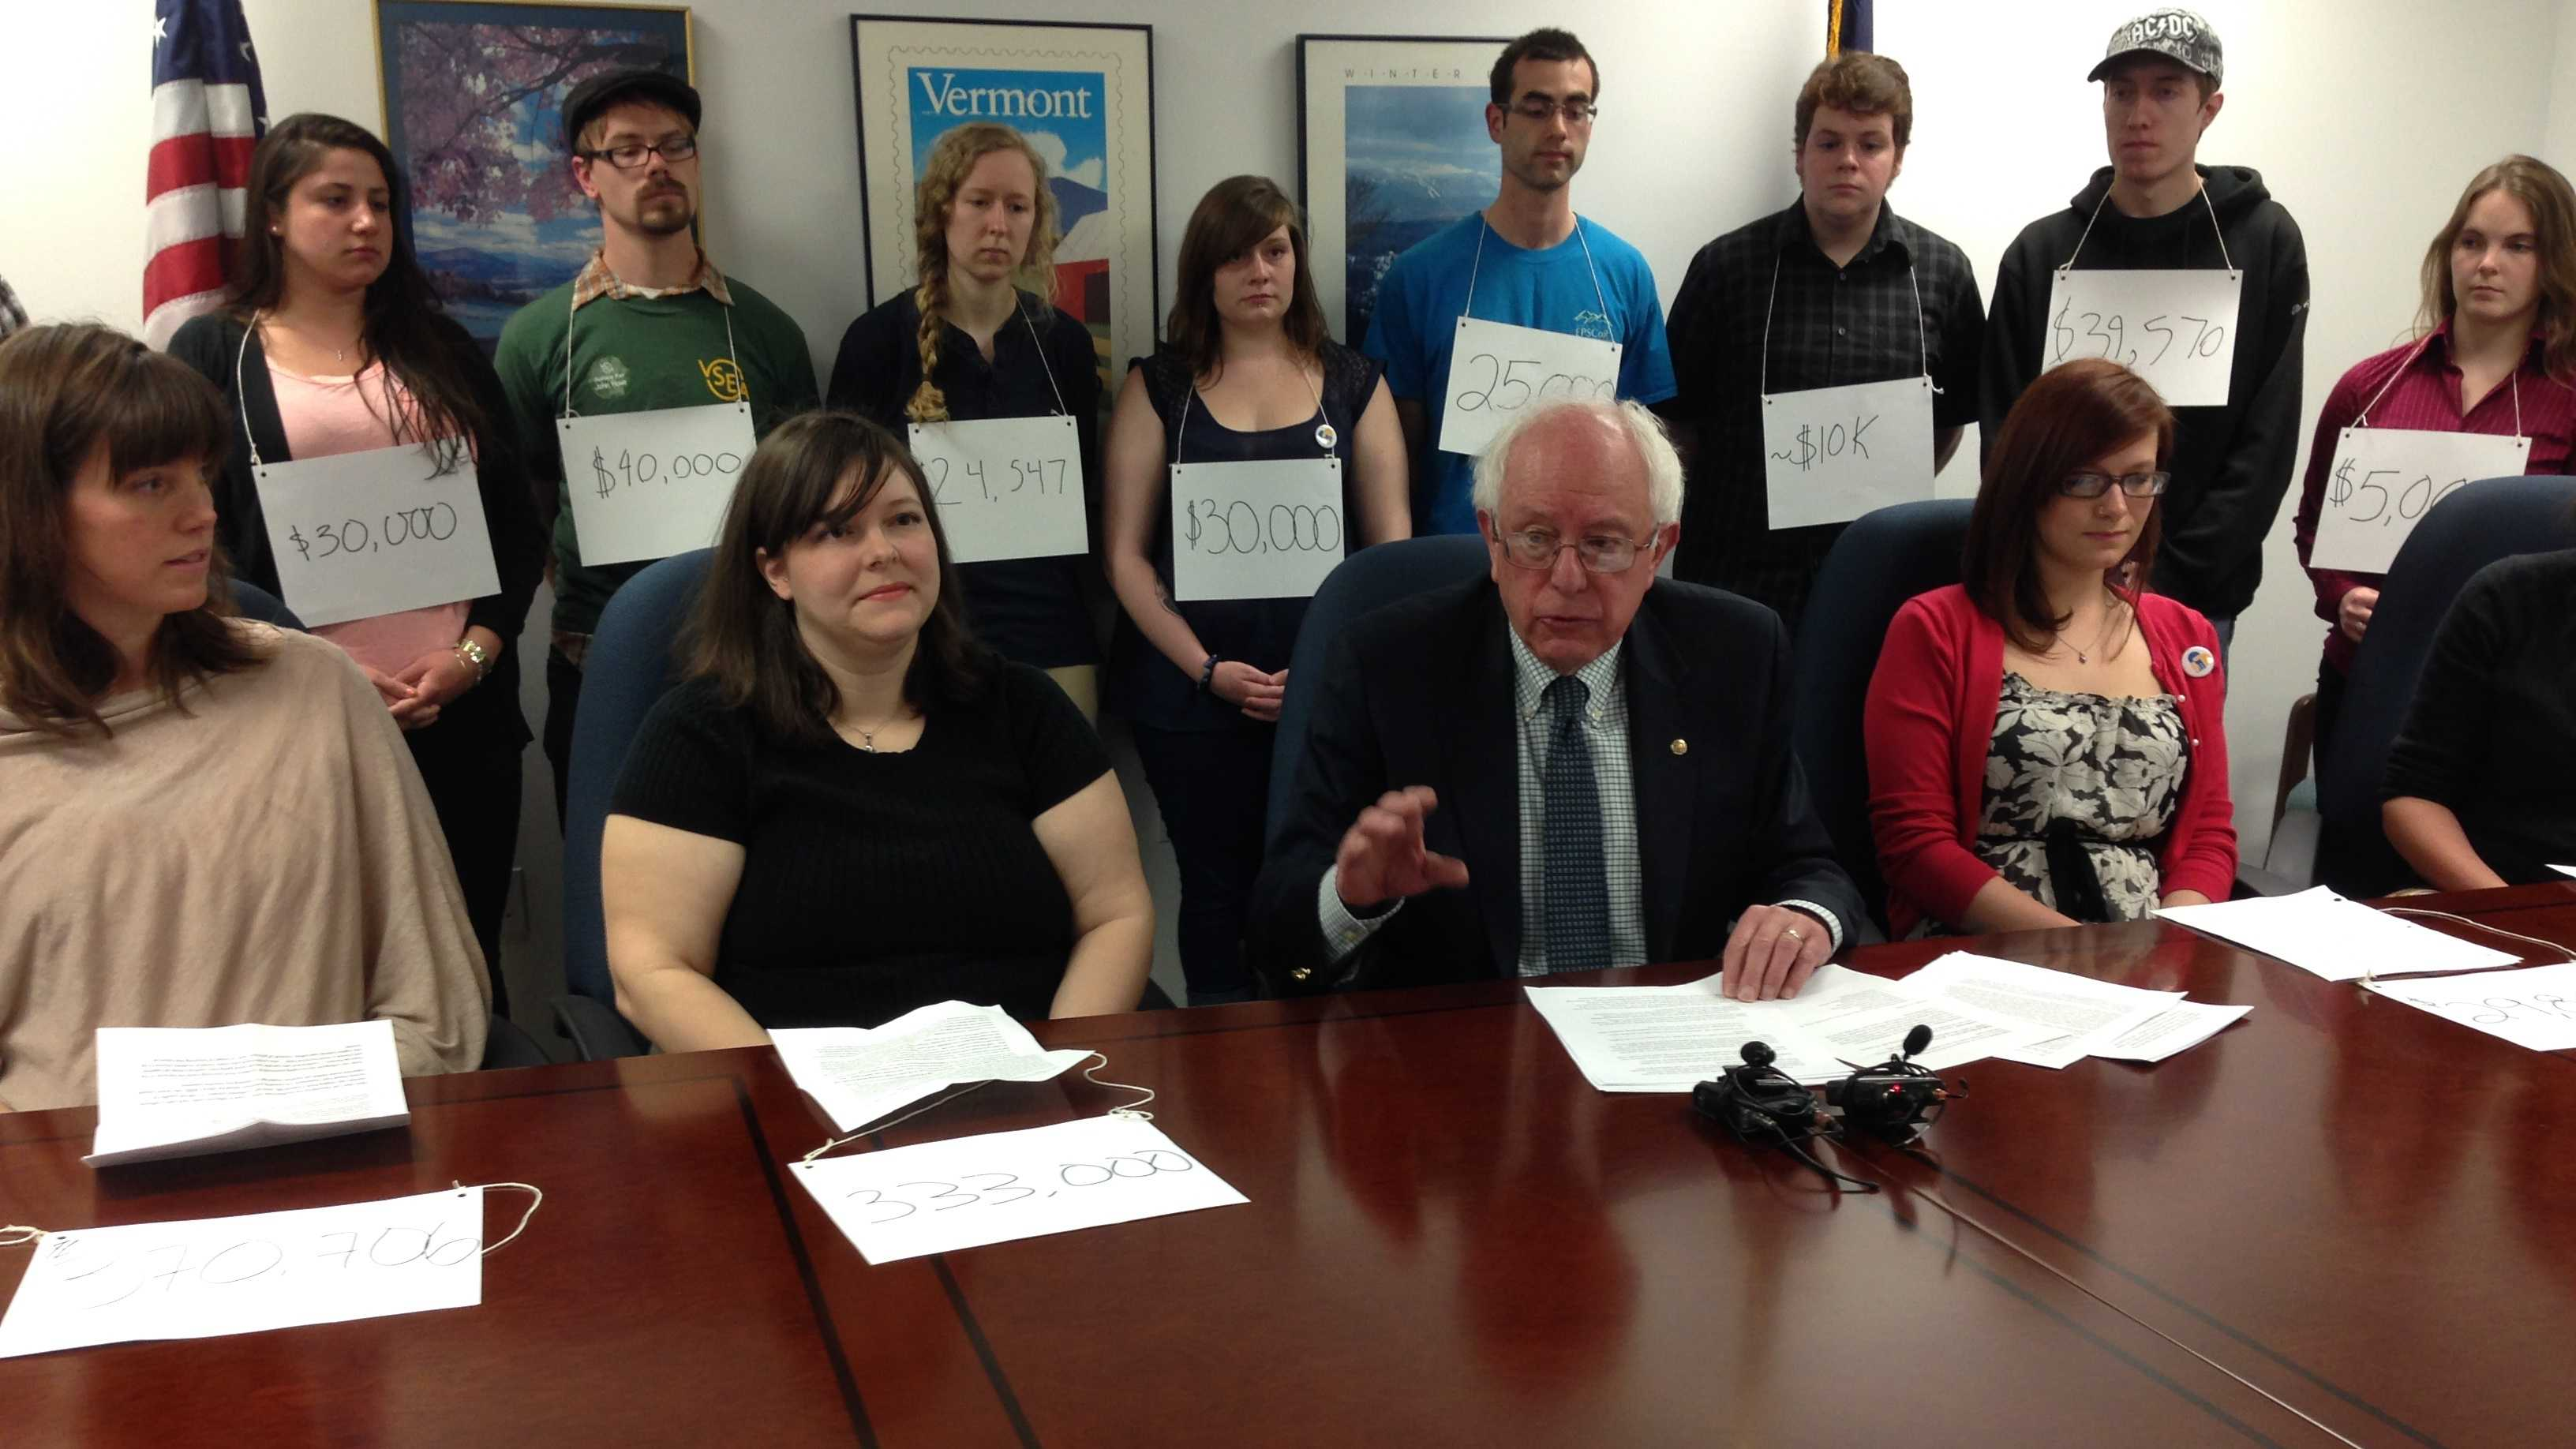 U.S. Senator Bernie Sanders is surrounded by Vermont college students wearing signs noting their debt load.